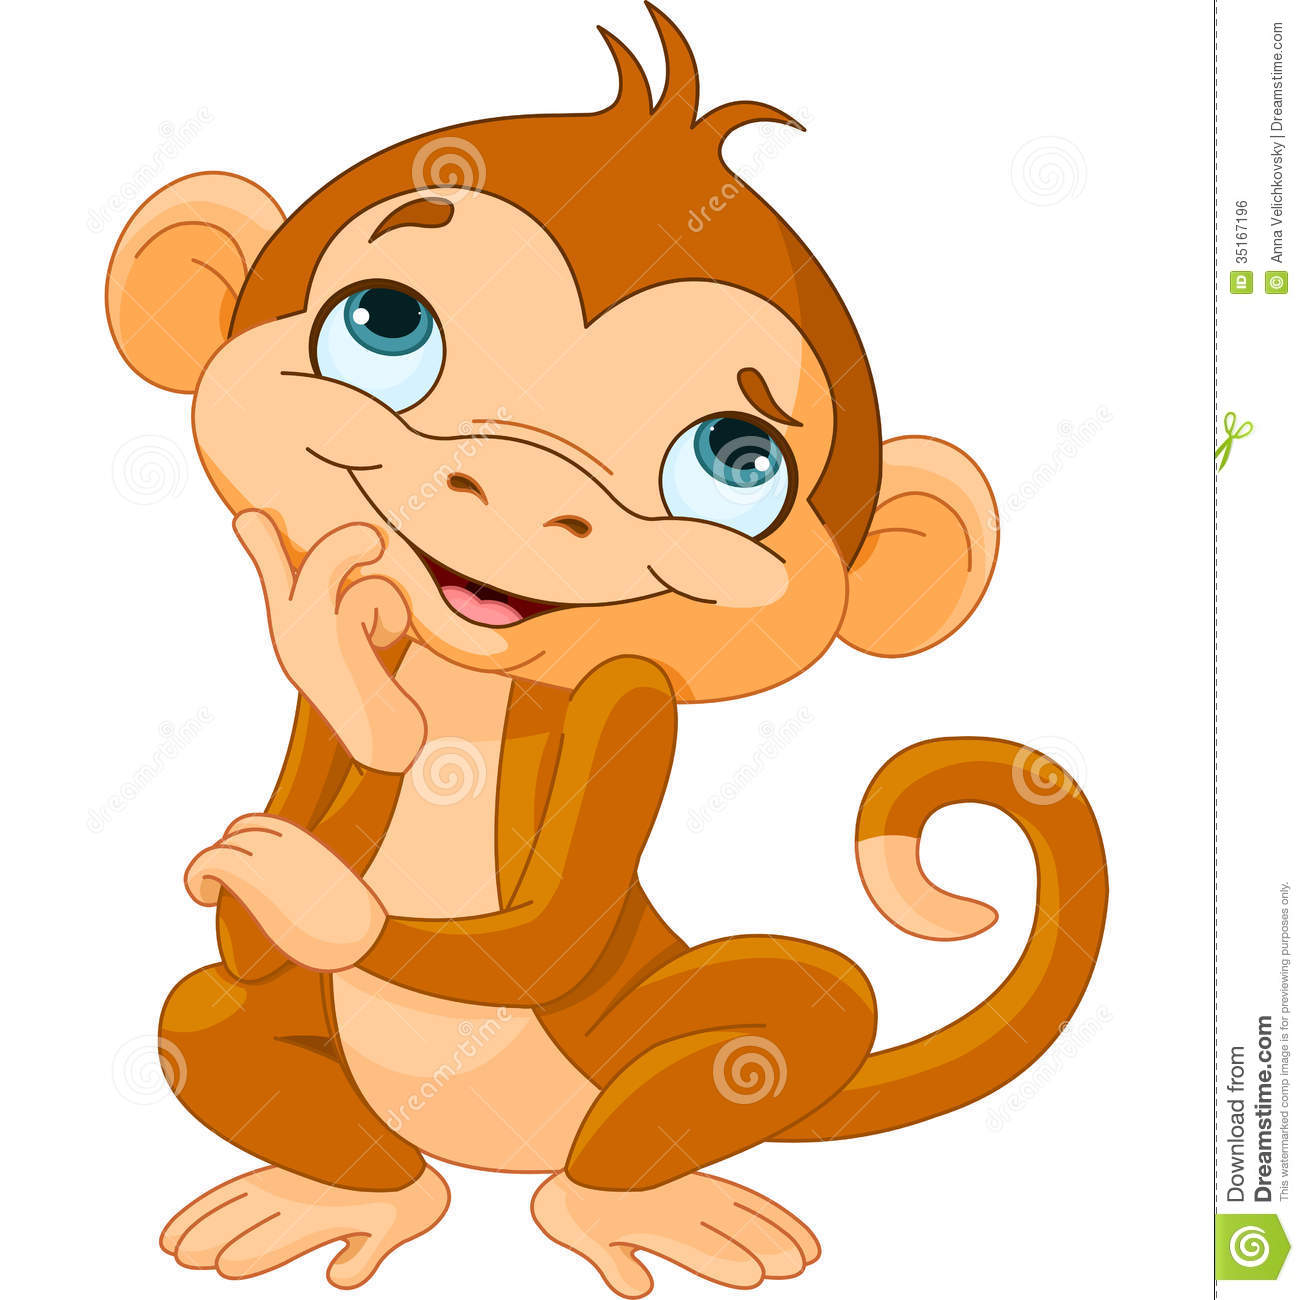 Monkey Thinking Royalty Free Stock Image - Image: 35167196